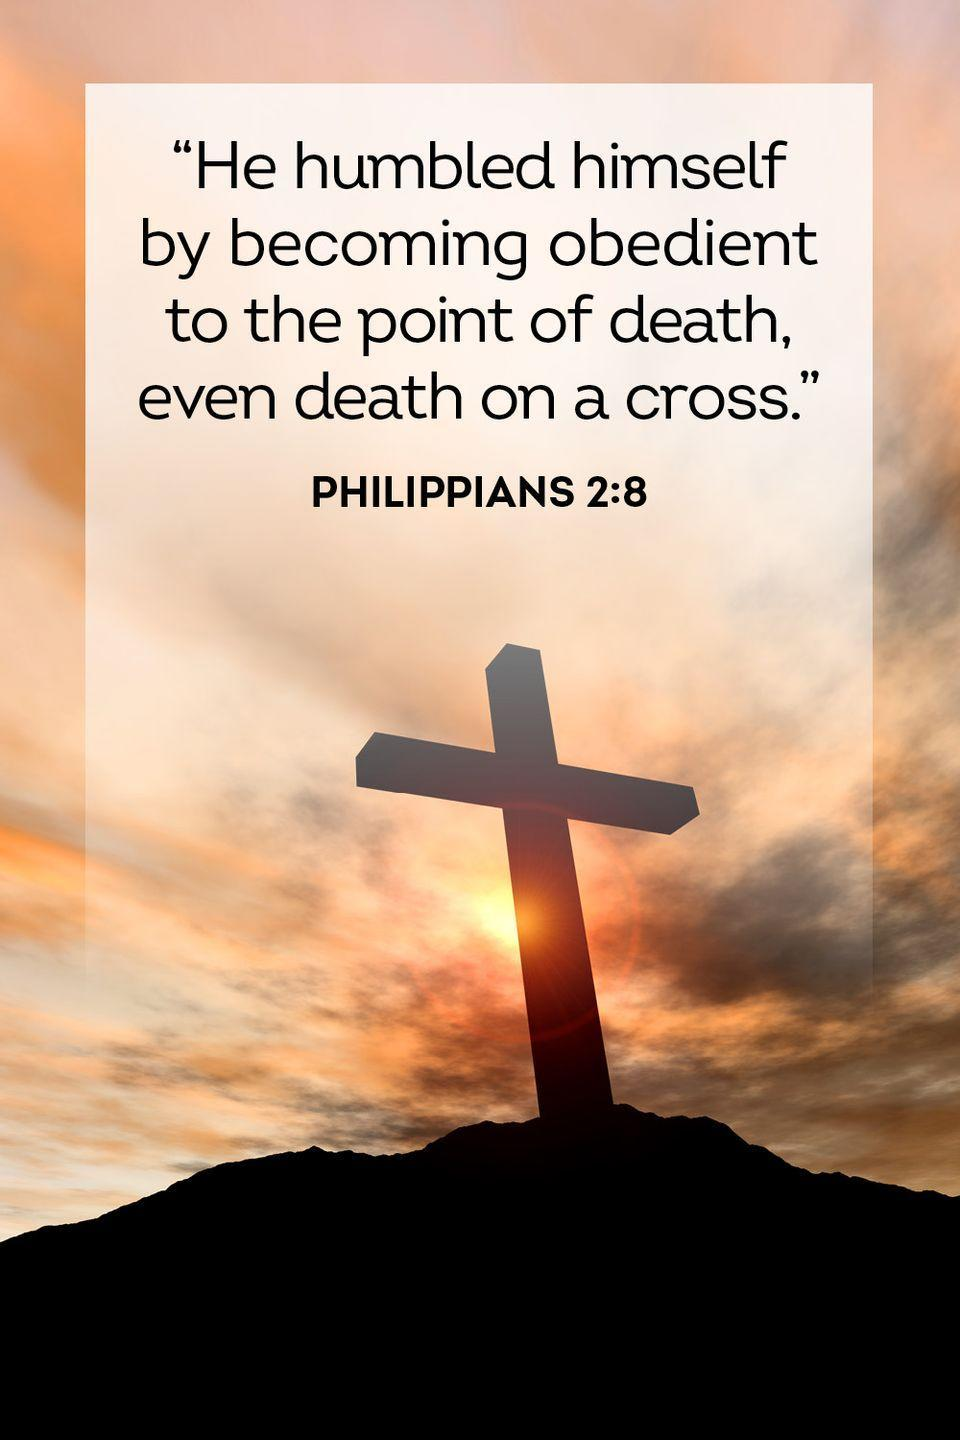 "<p>""He humbled himself by becoming obedient to the point of death, even death on a cross."" — Philippians 2:8</p>"